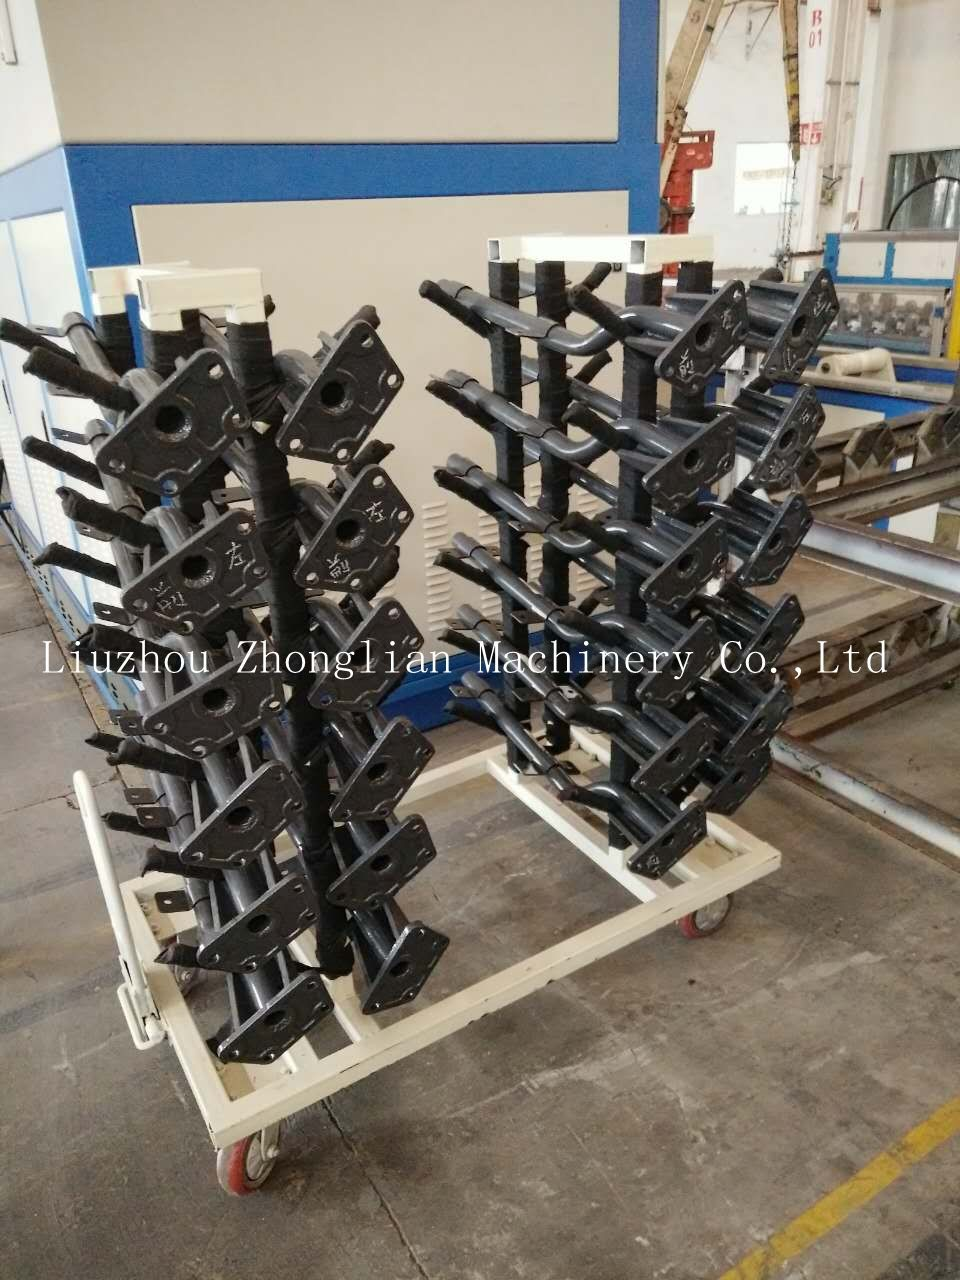 High quality 5 tier storage rack,warehouse shelf system for sale